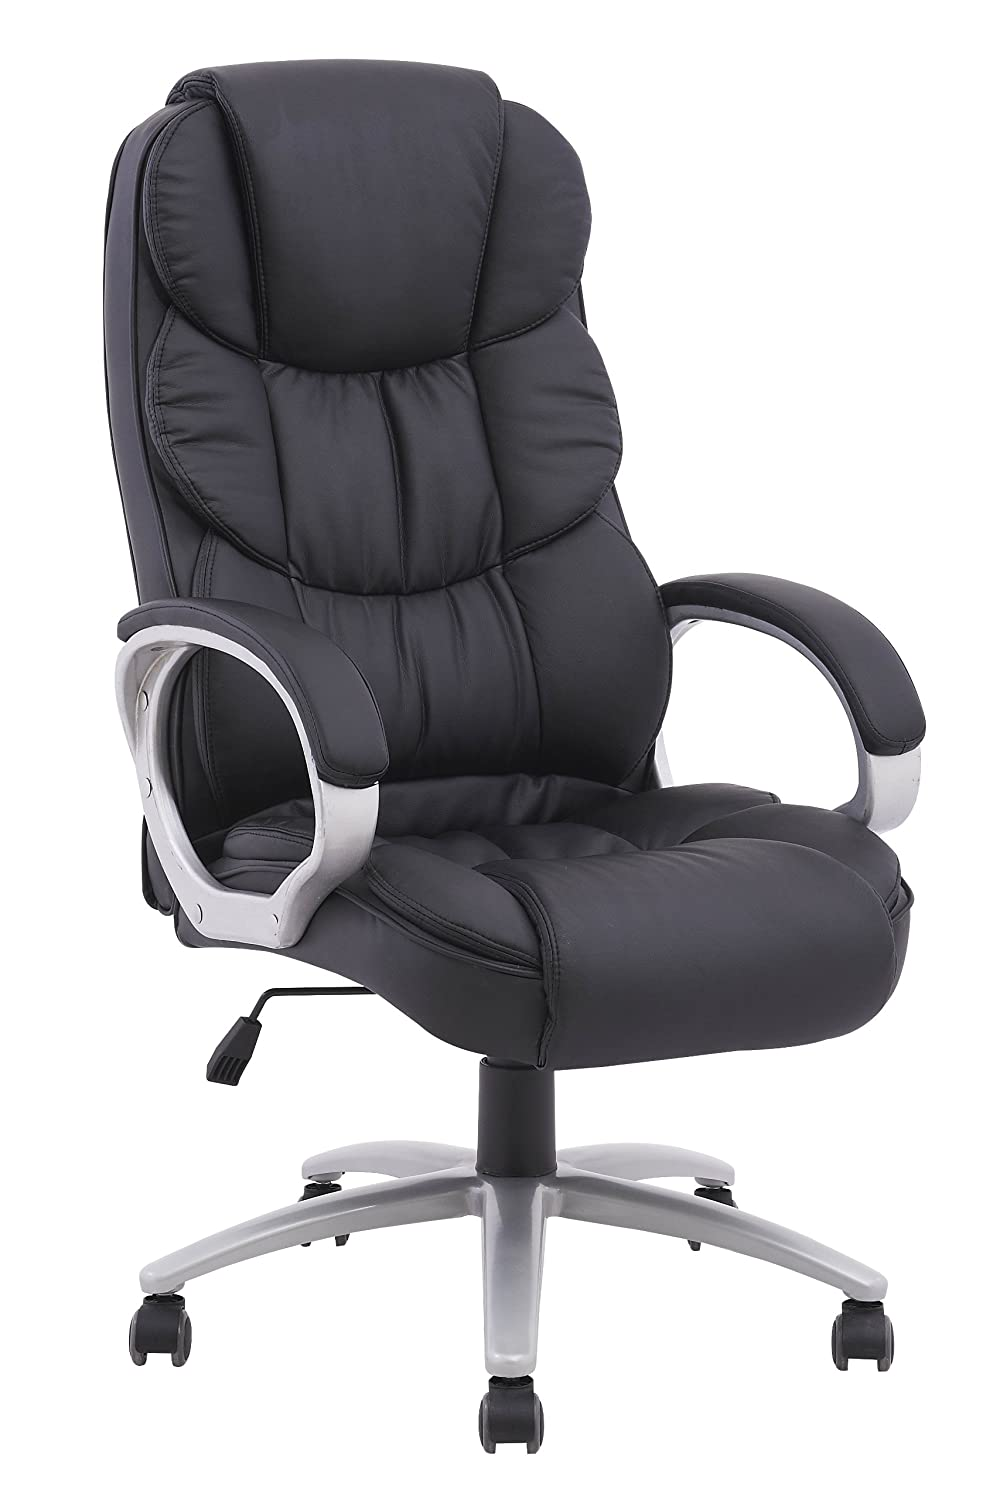 Modern ergonomic office chairs - Amazon Com Bestoffice Ergonomic Pu Leather High Back Office Chair Black Kitchen Dining